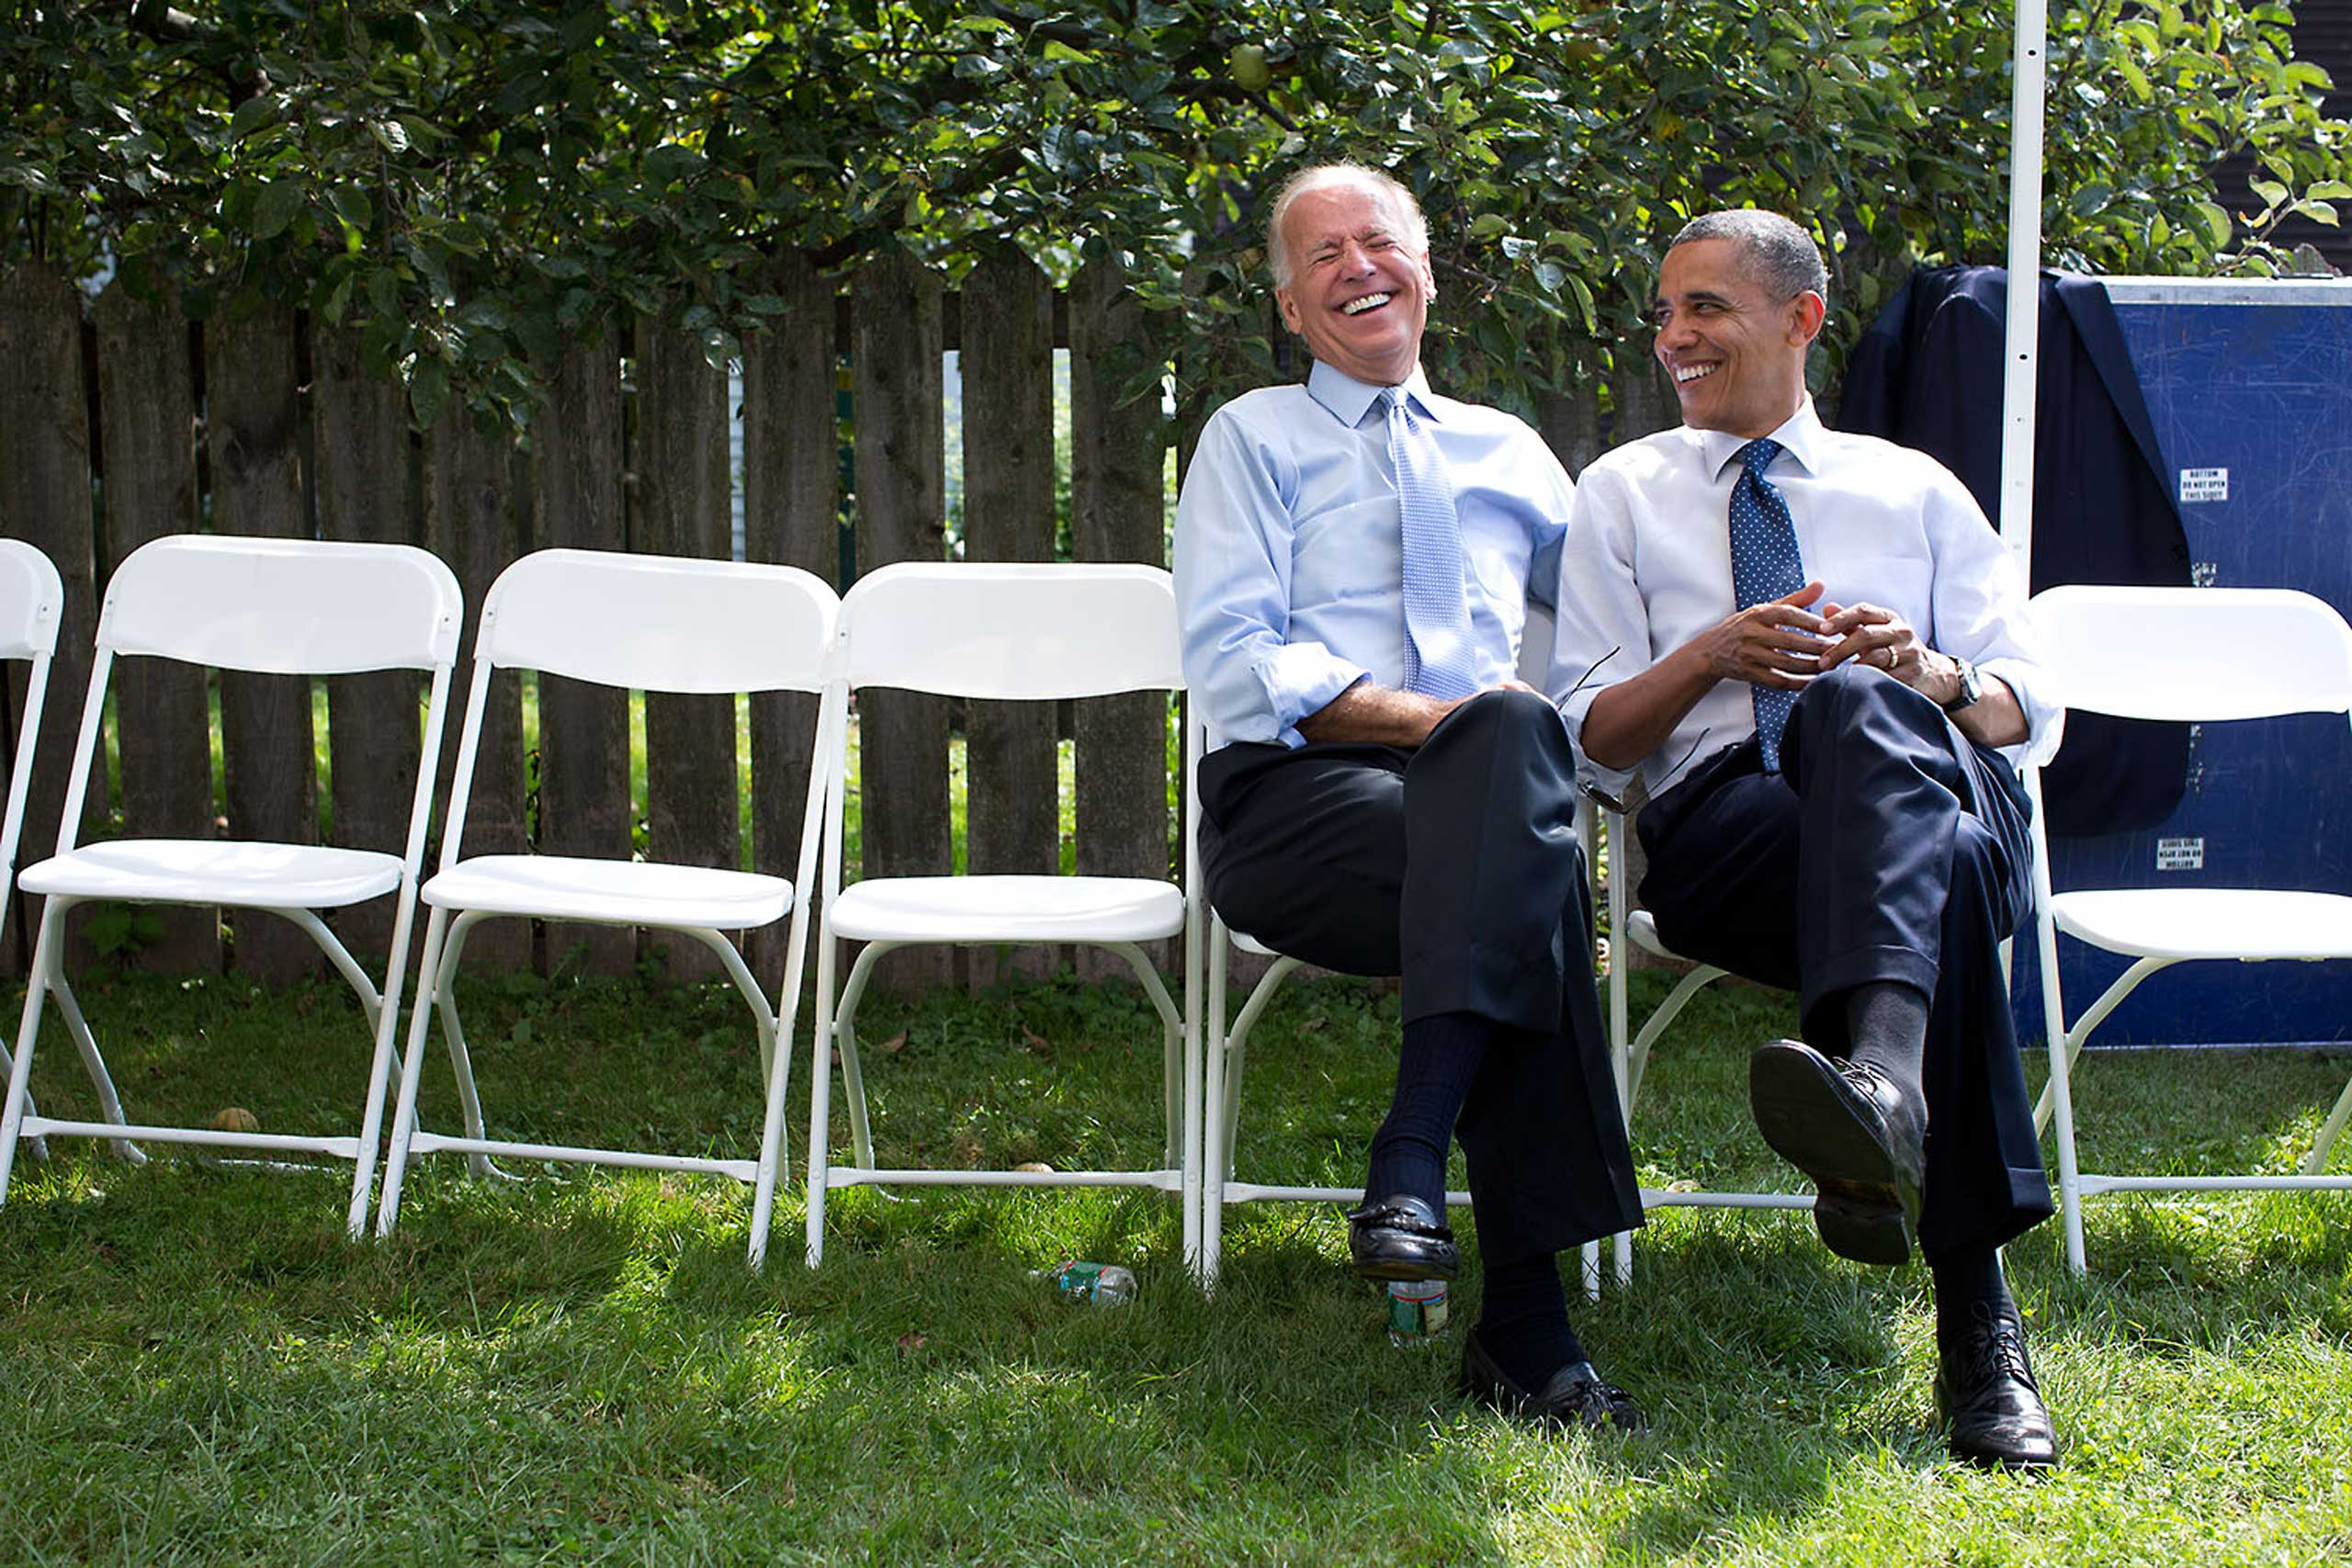 President Obama and Vice President Biden share a laugh before an event at Strawbery Banke Museum in Portsmouth, N.H., Sept. 7, 2012.